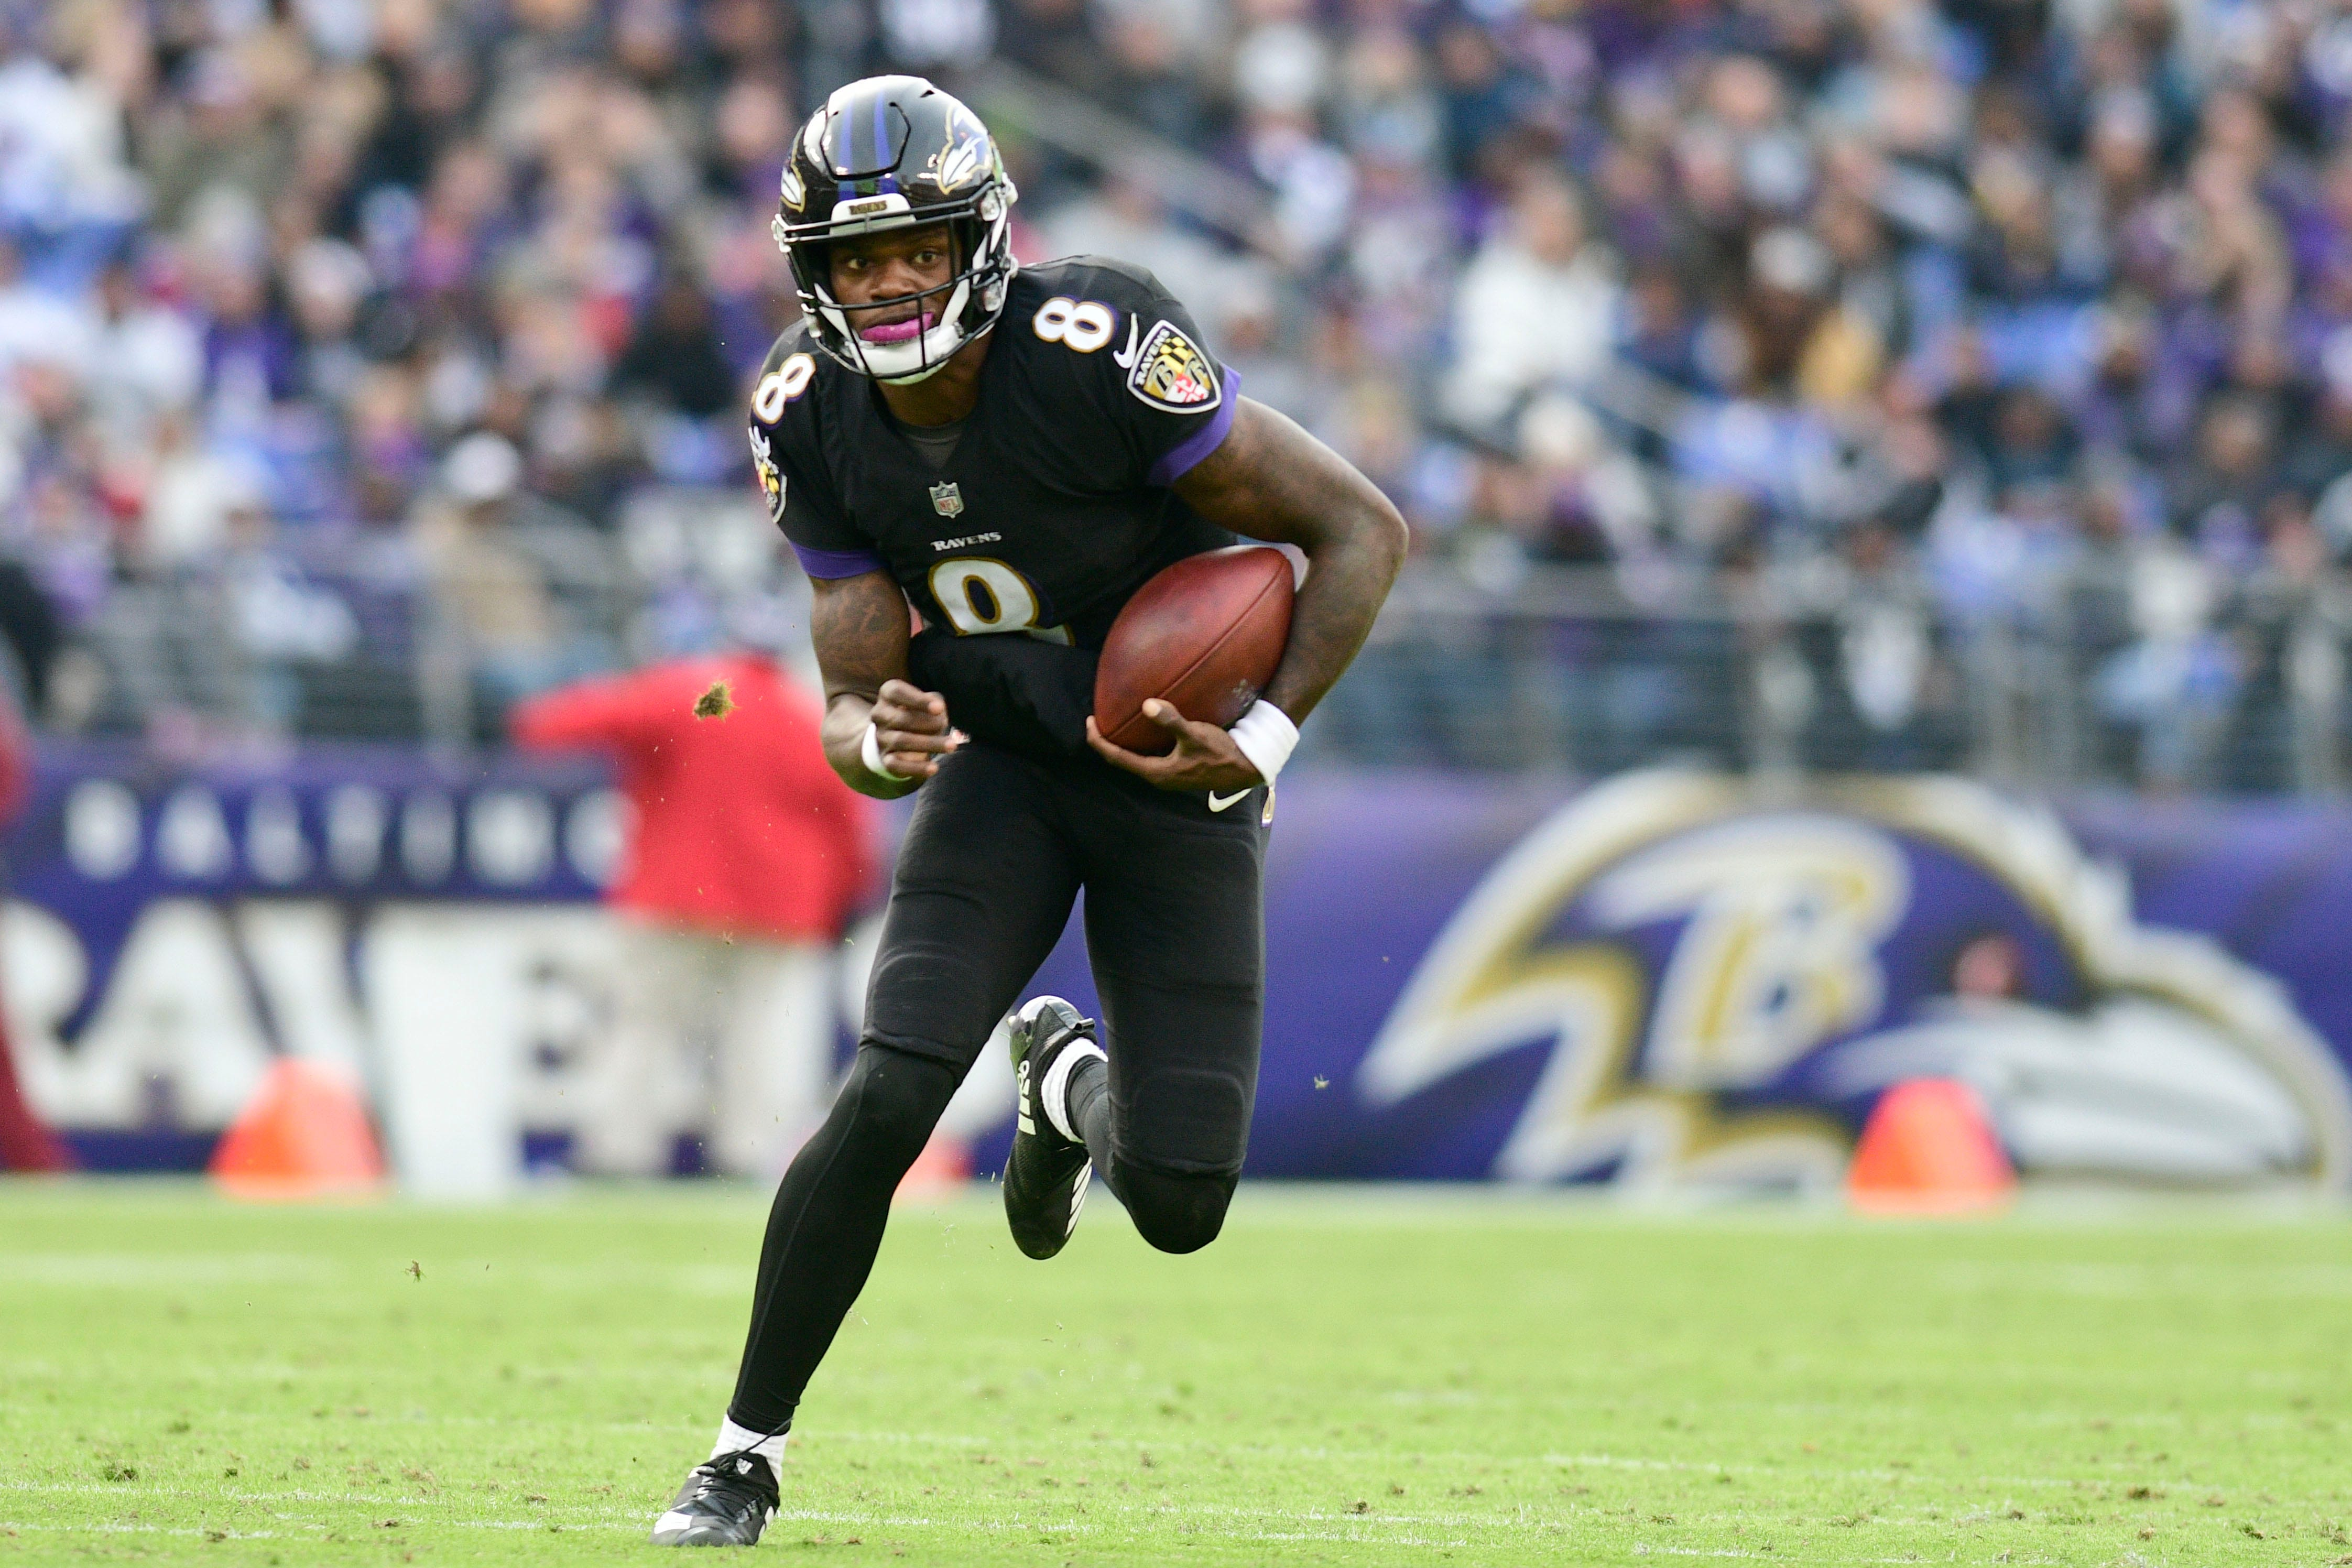 After first start, Lamar Jackson leaves Ravens with plenty of questions in QB riddle